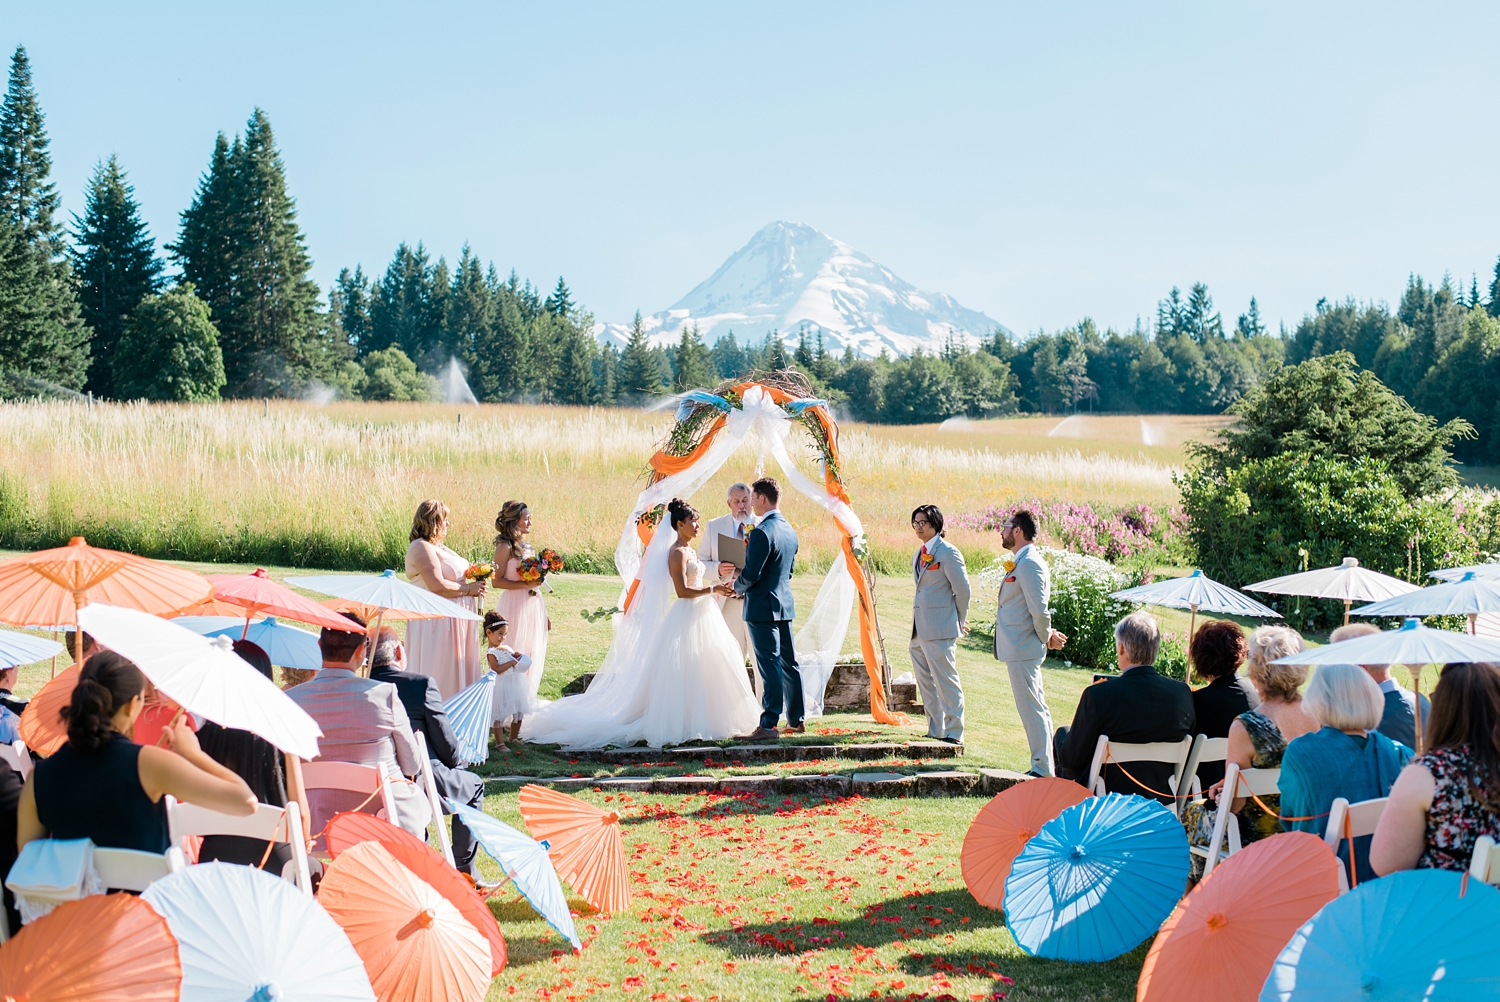 mount-hood-bnb-wedding-portland-oregon-sokhorn-jay-0687_cr.jpg